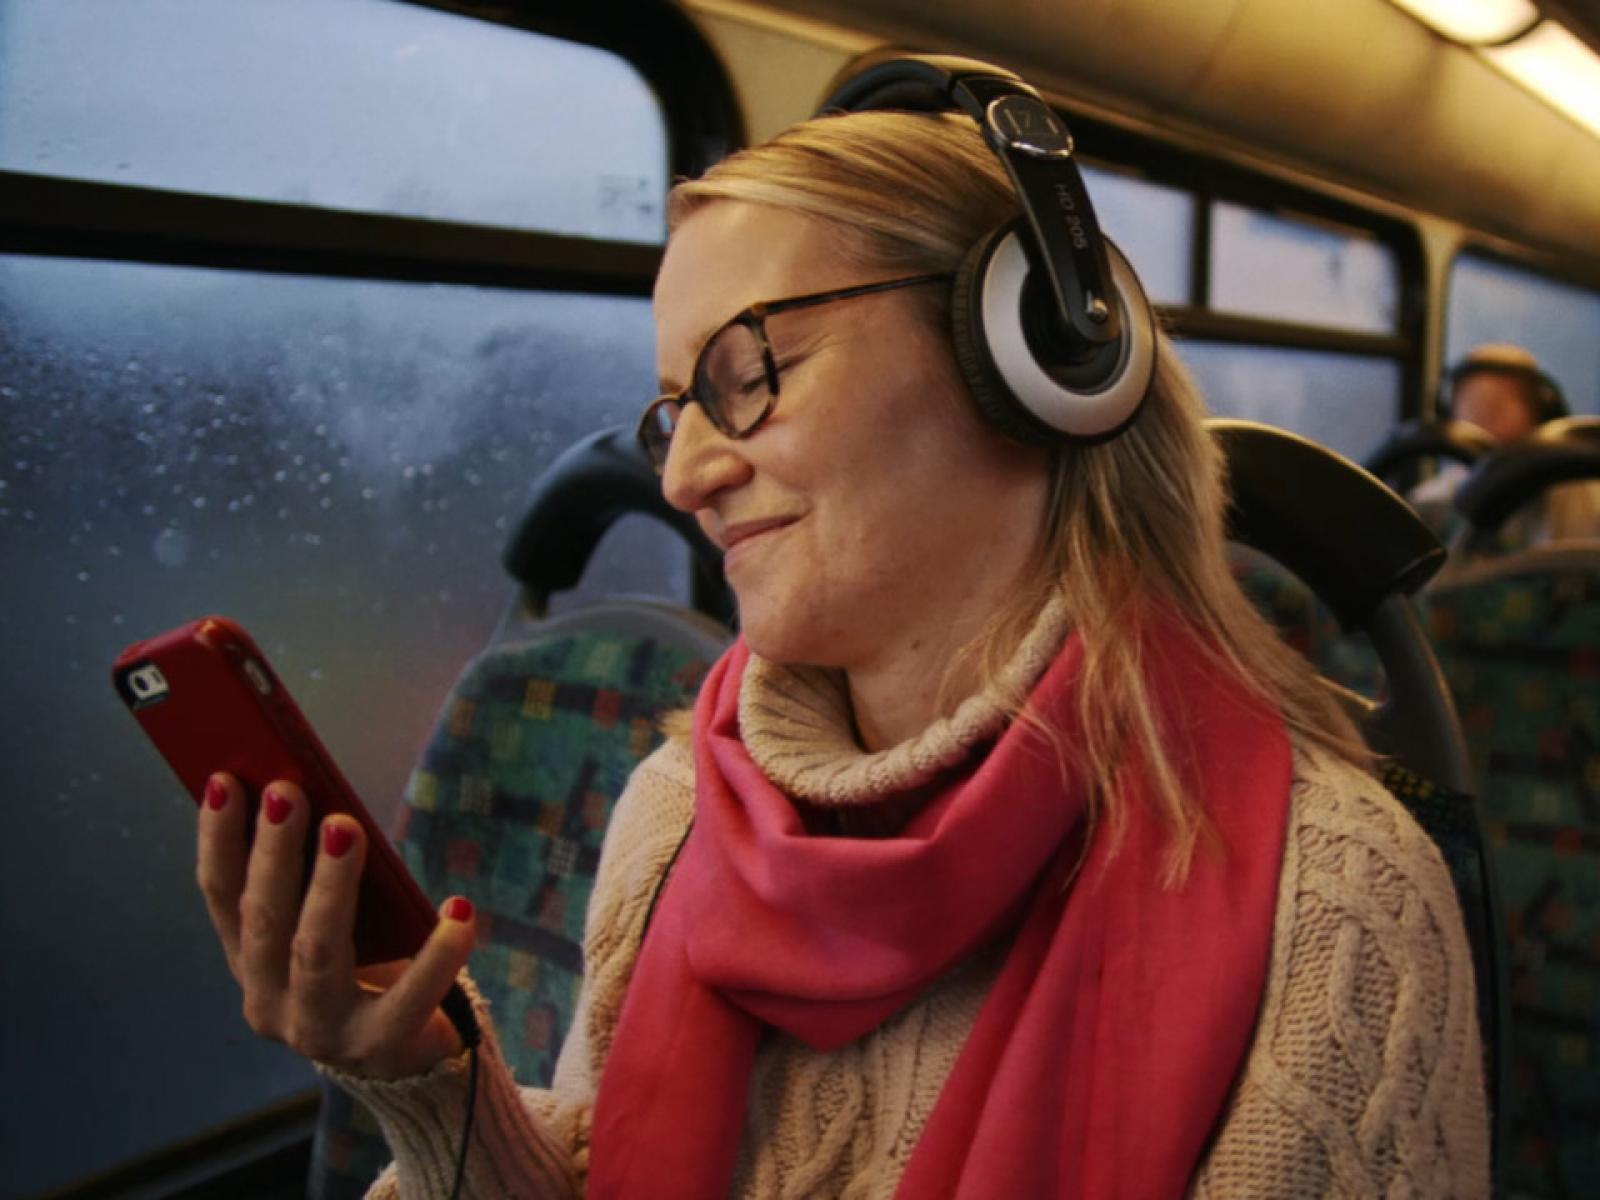 Woman using Online Services on Bus